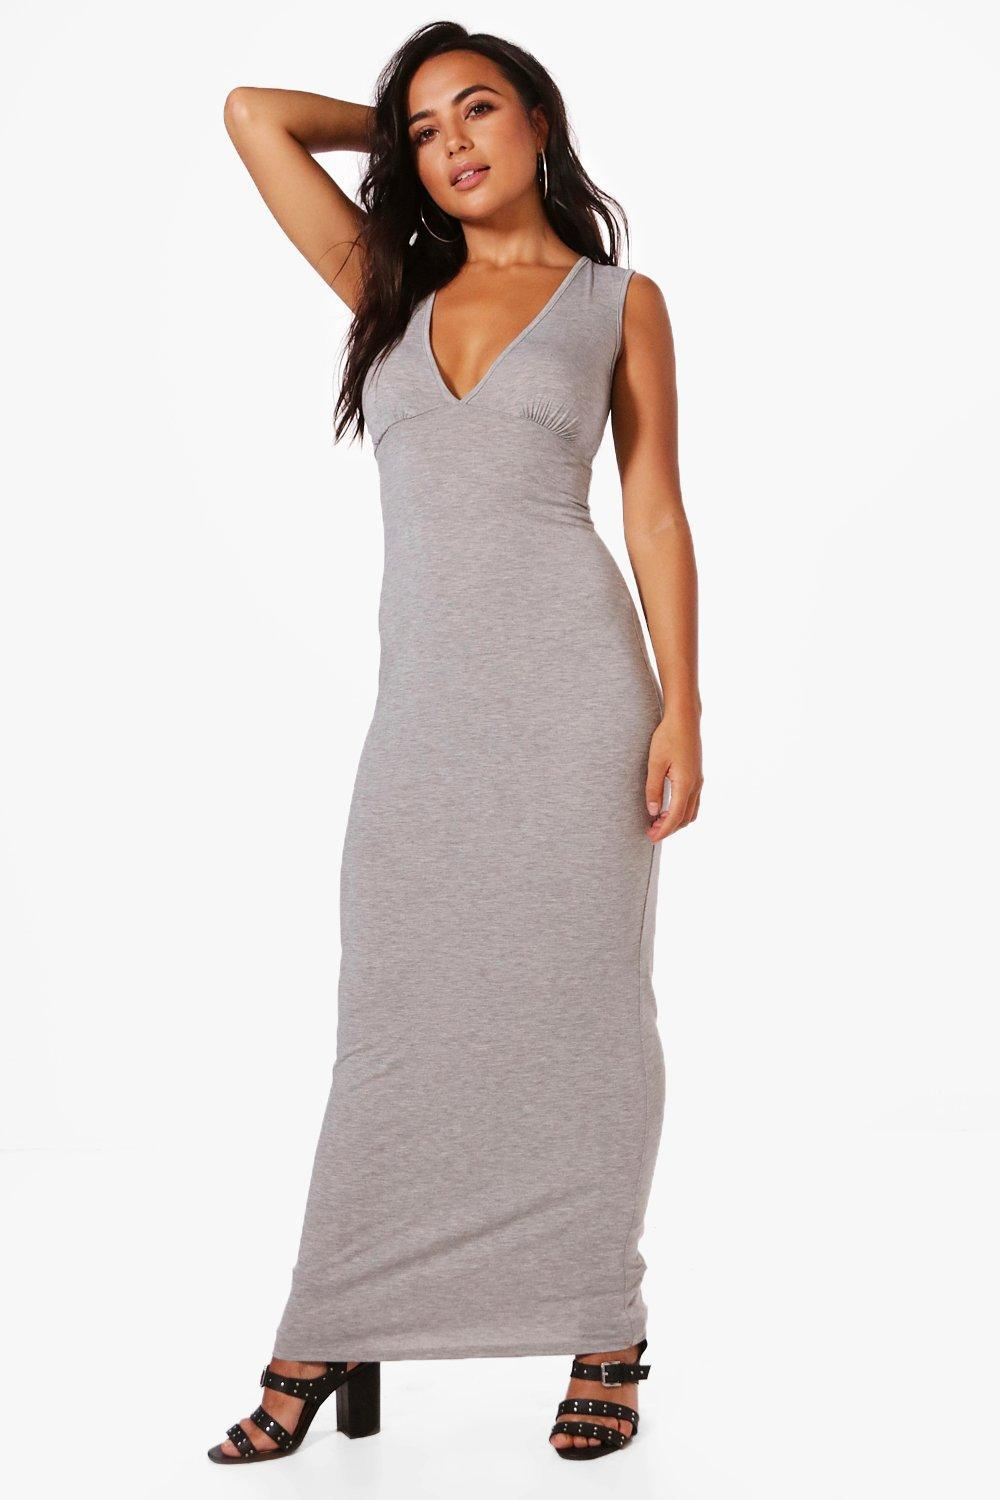 607e9671c17 Boohoo Petite Holly Plunge Jersey Maxi Dress in Gray - Lyst